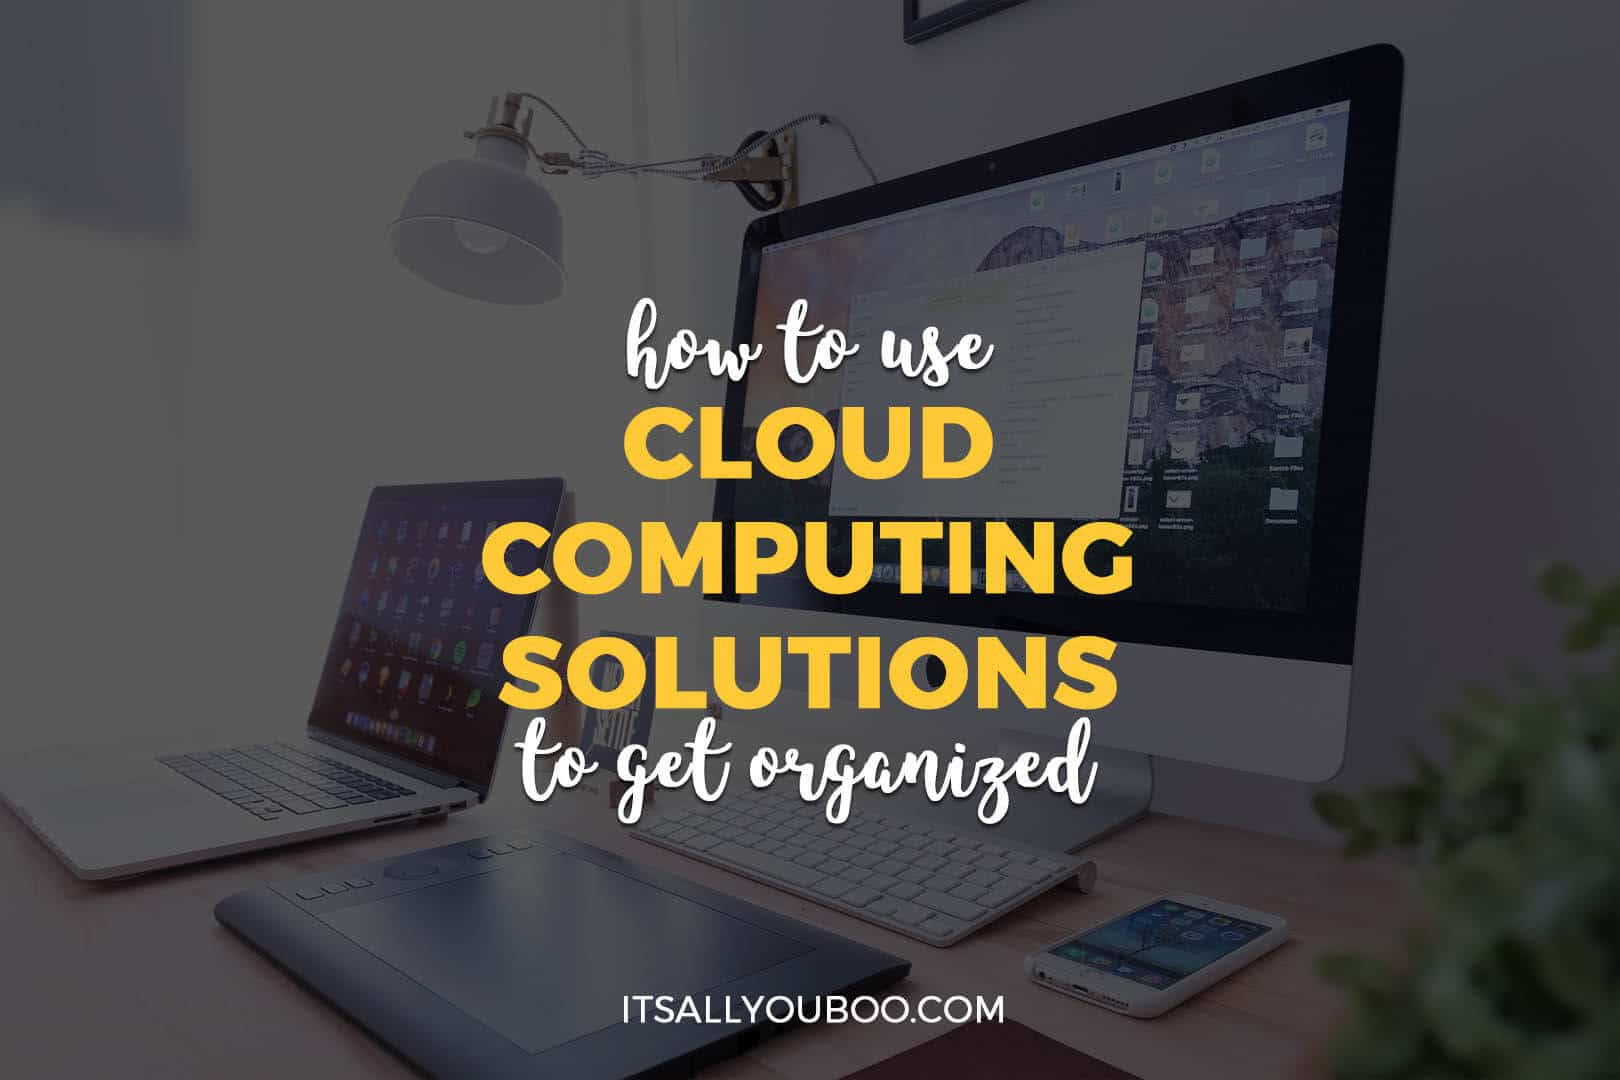 How to Use Cloud Computing Solutions to Get Organized